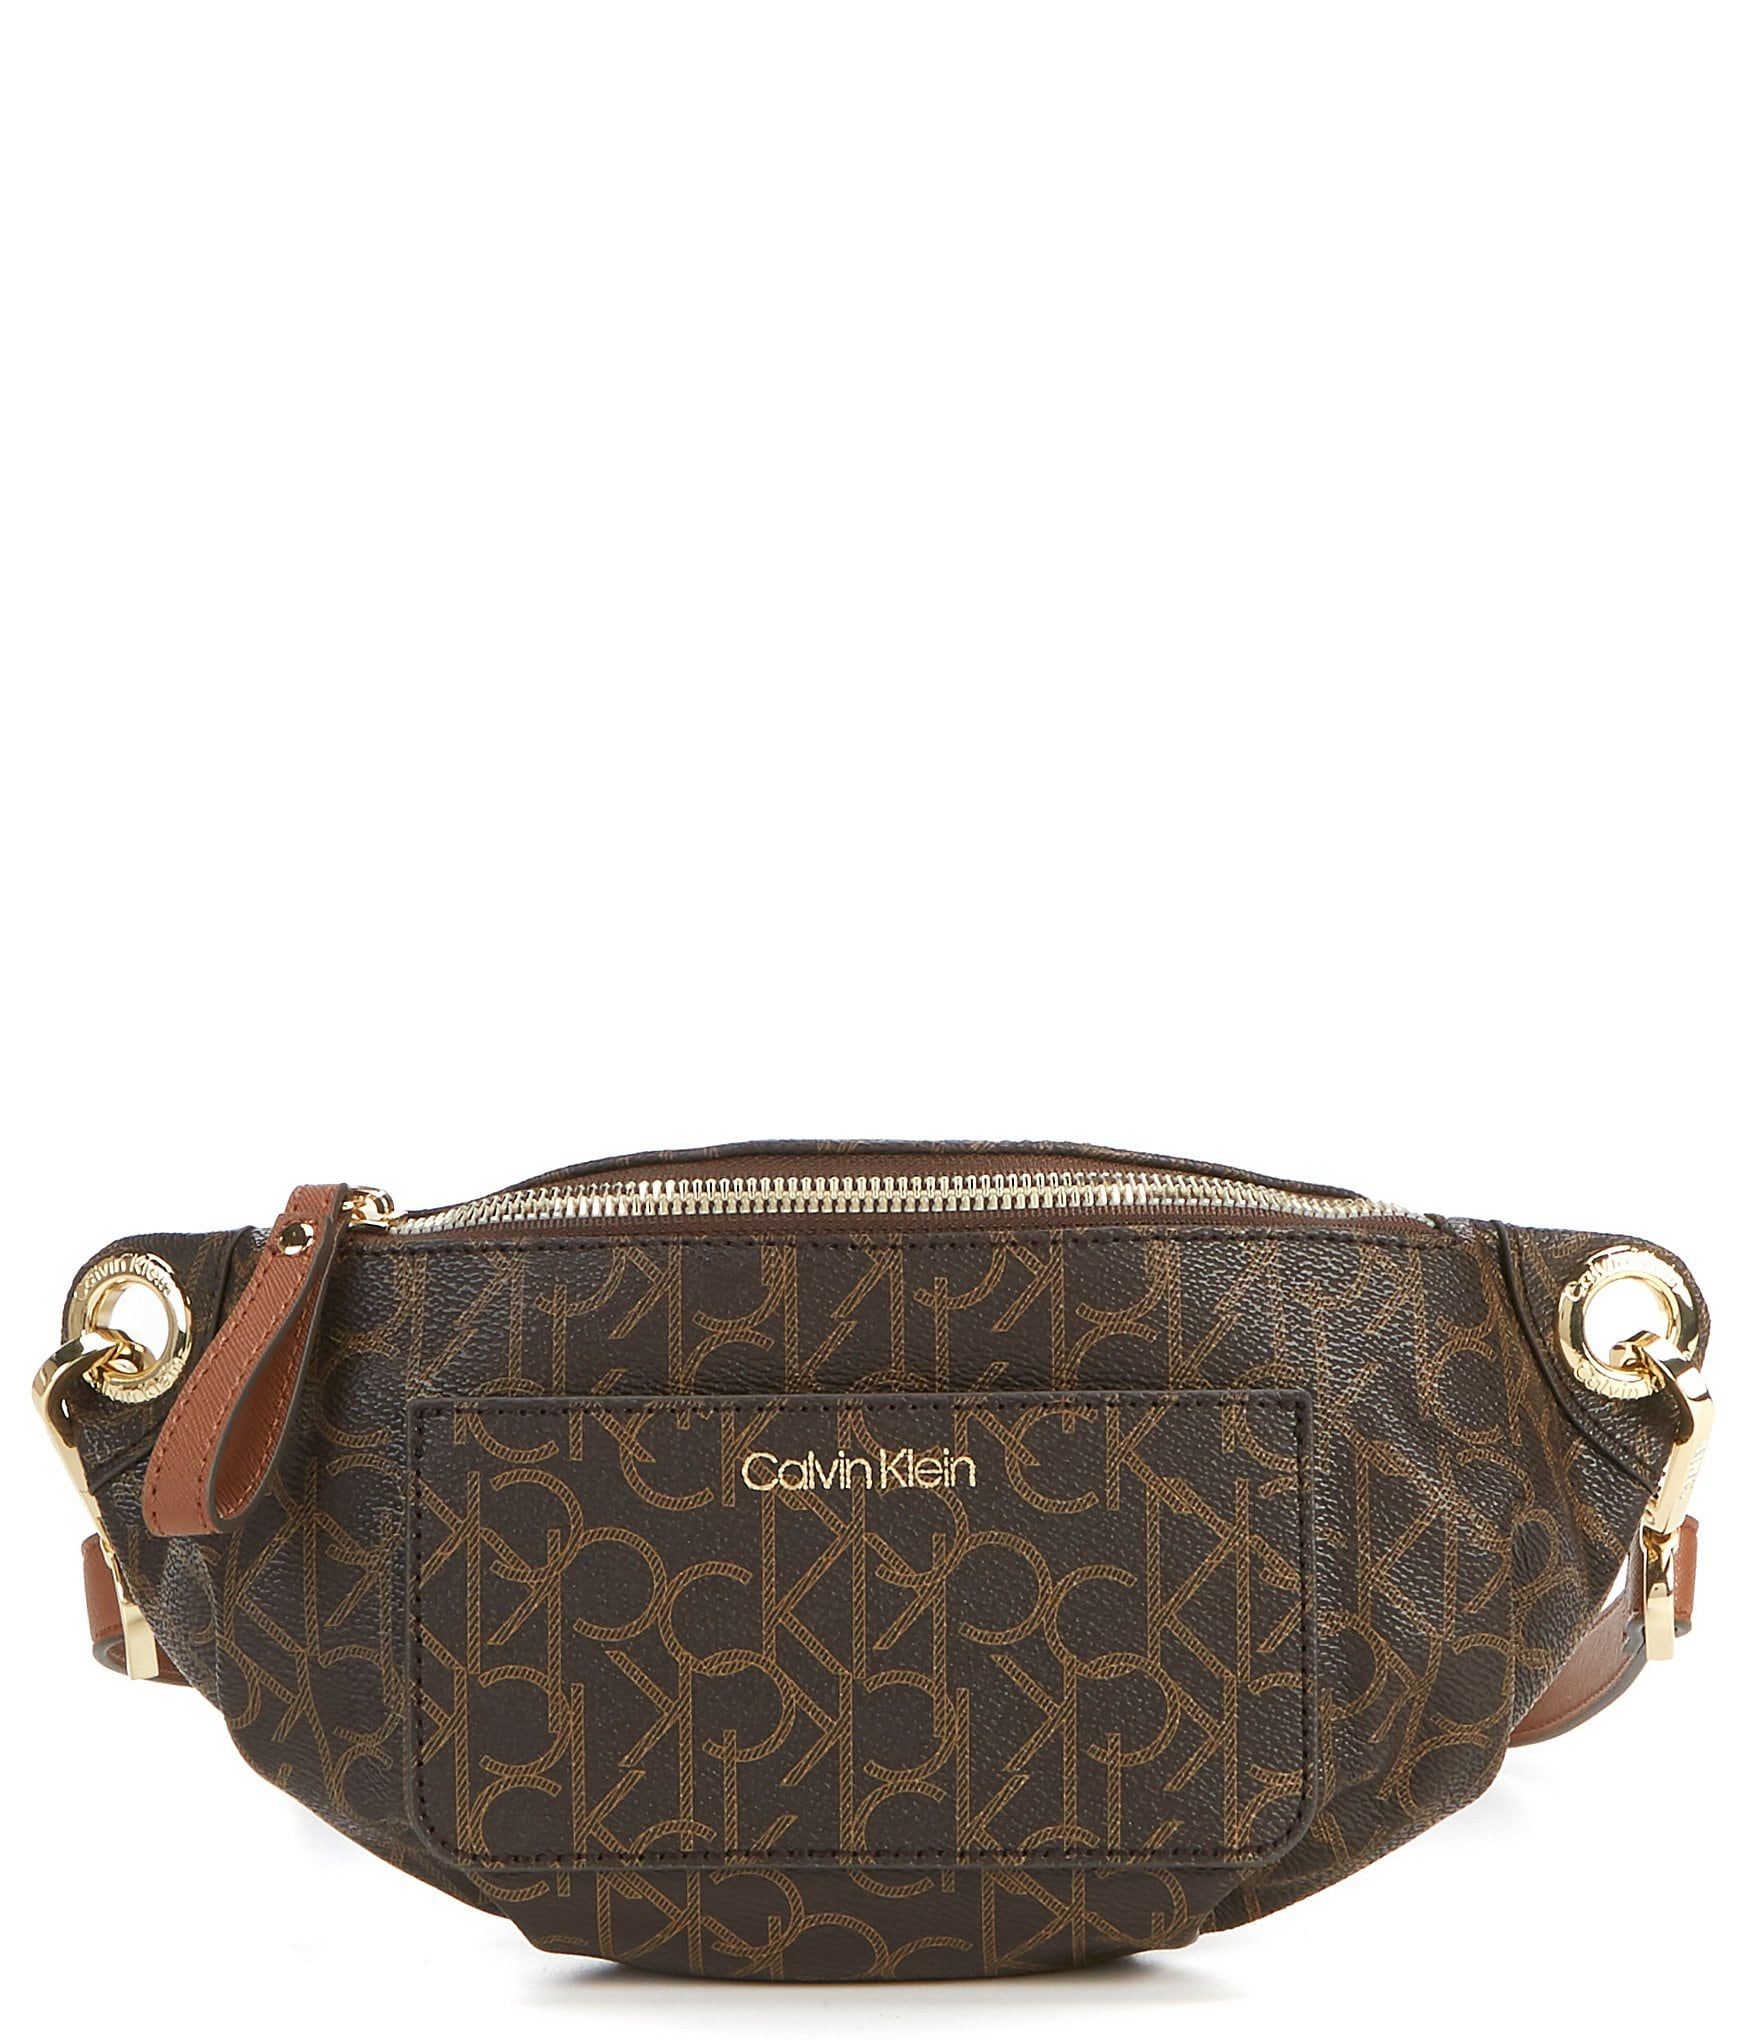 fab2a4cc5e calvin klein woman: Handbags, Purses & Wallets | Dillard's